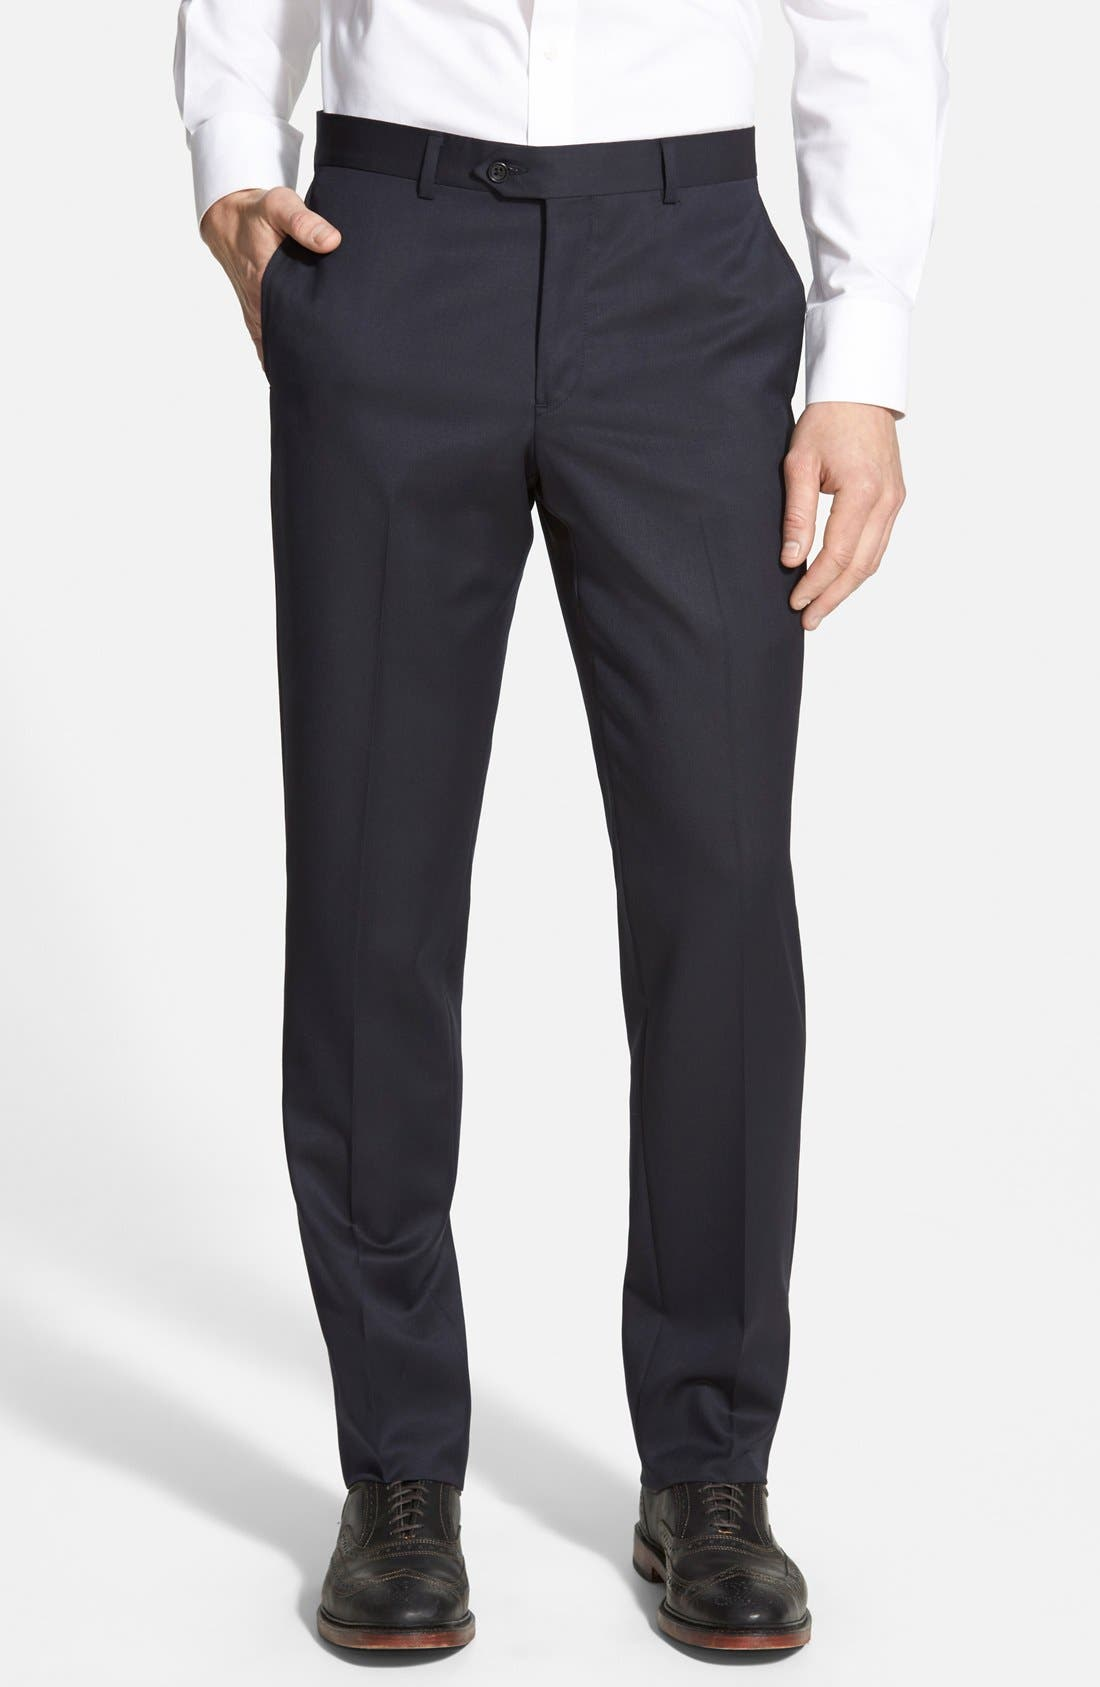 A pair of dress pants is essential for every guy's wardrobe. The staple piece is a necessity whether you wear them to the office, an interview, a wedding, or even for date night. A good pair of dress pants will make you feel polished and put together while looking sharp and stylish. Style them.